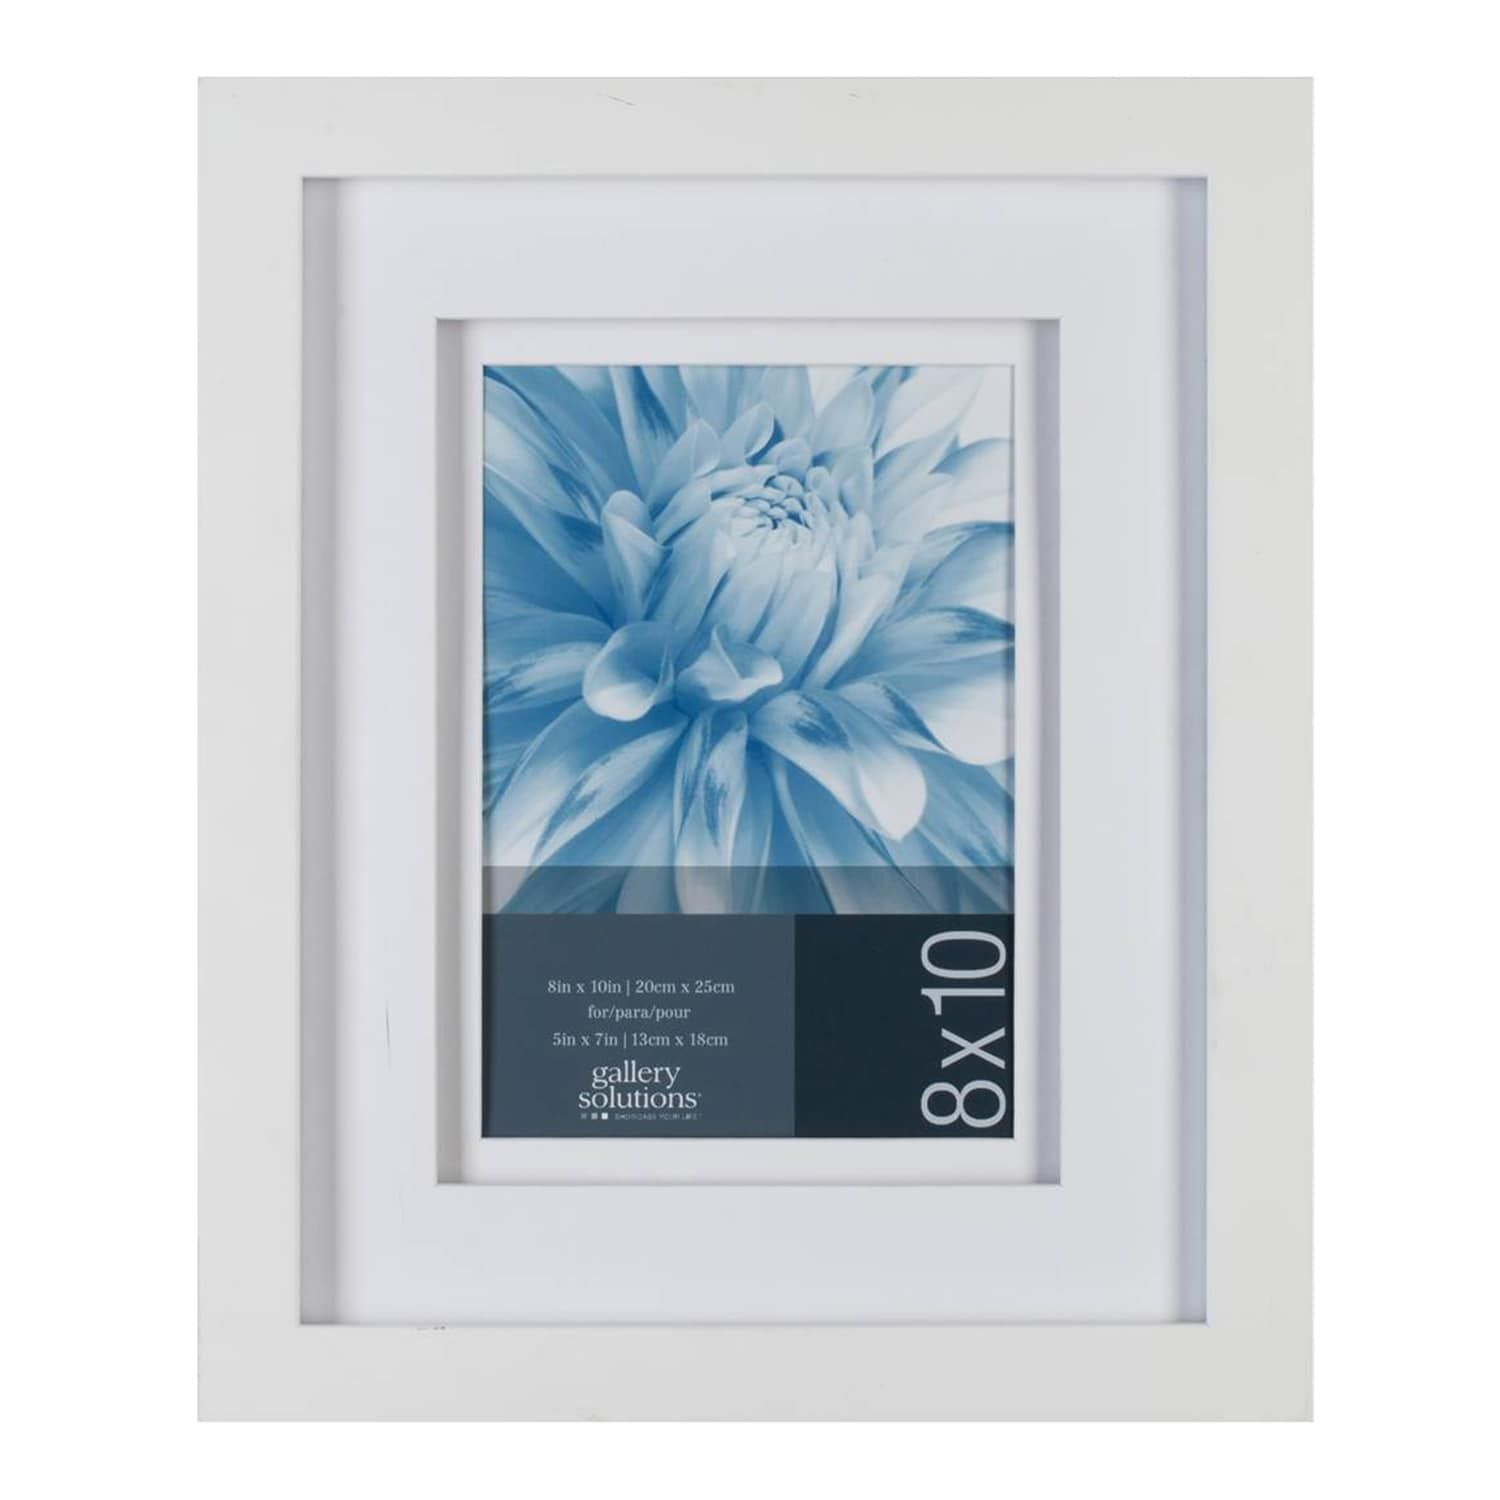 Gallery Solutions 8 X 10 Matted Frame Solutions Gallery Frame Matted Frames On Wall